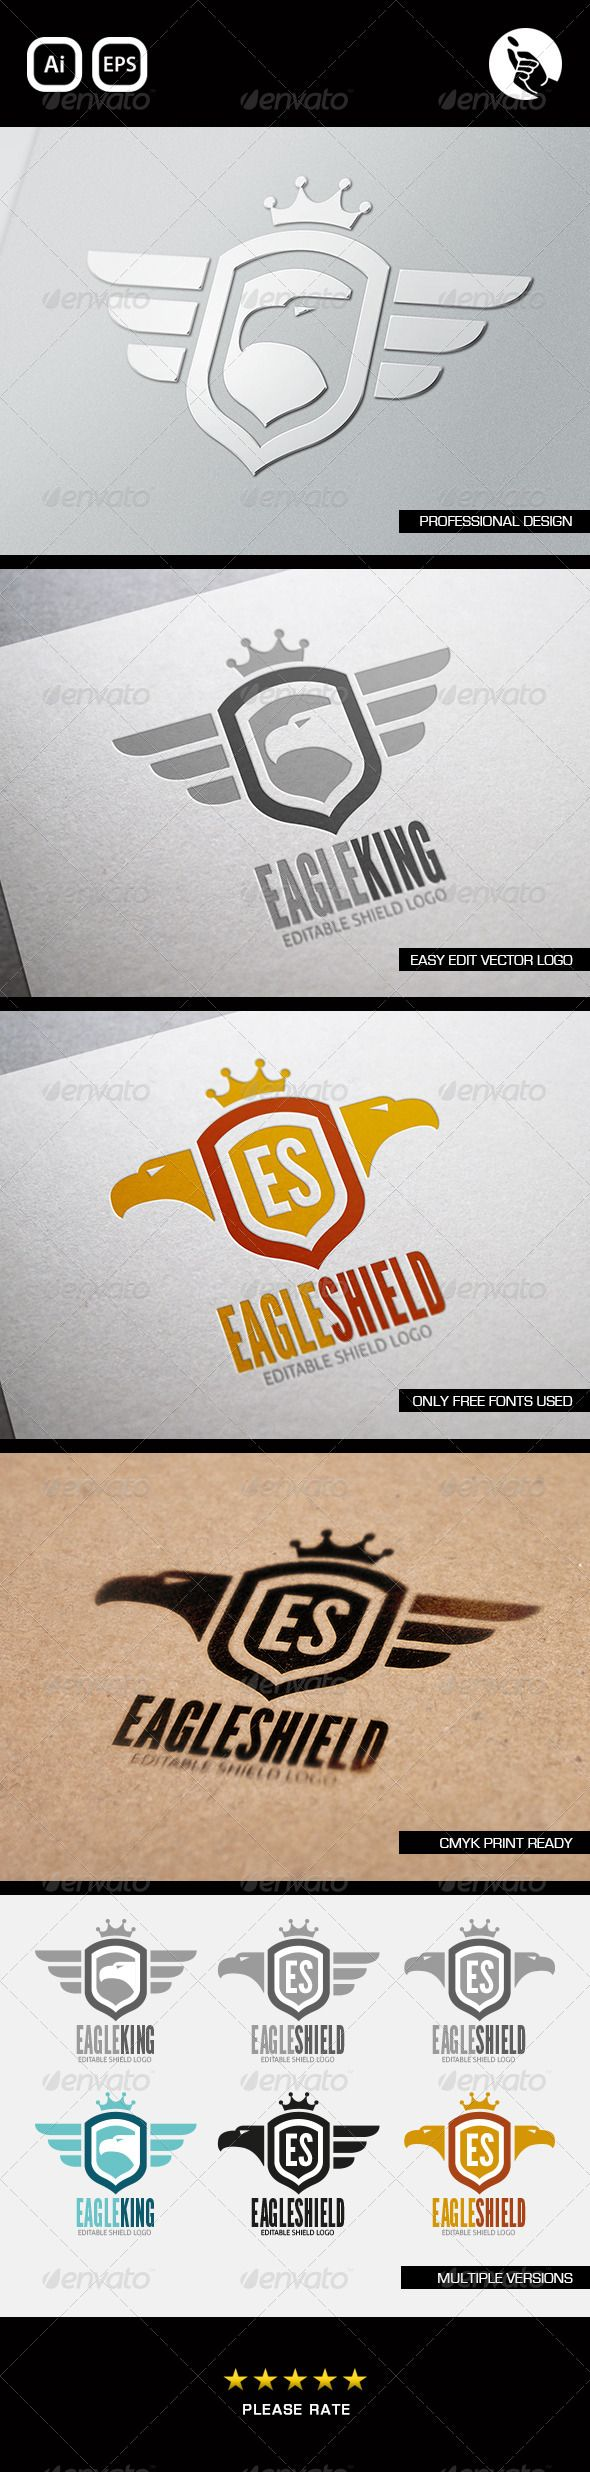 Eagle Shield - Logo Design Template Vector #logotype Download it here: http://graphicriver.net/item/eagle-shield-logo/4806405?s_rank=1058?ref=nesto